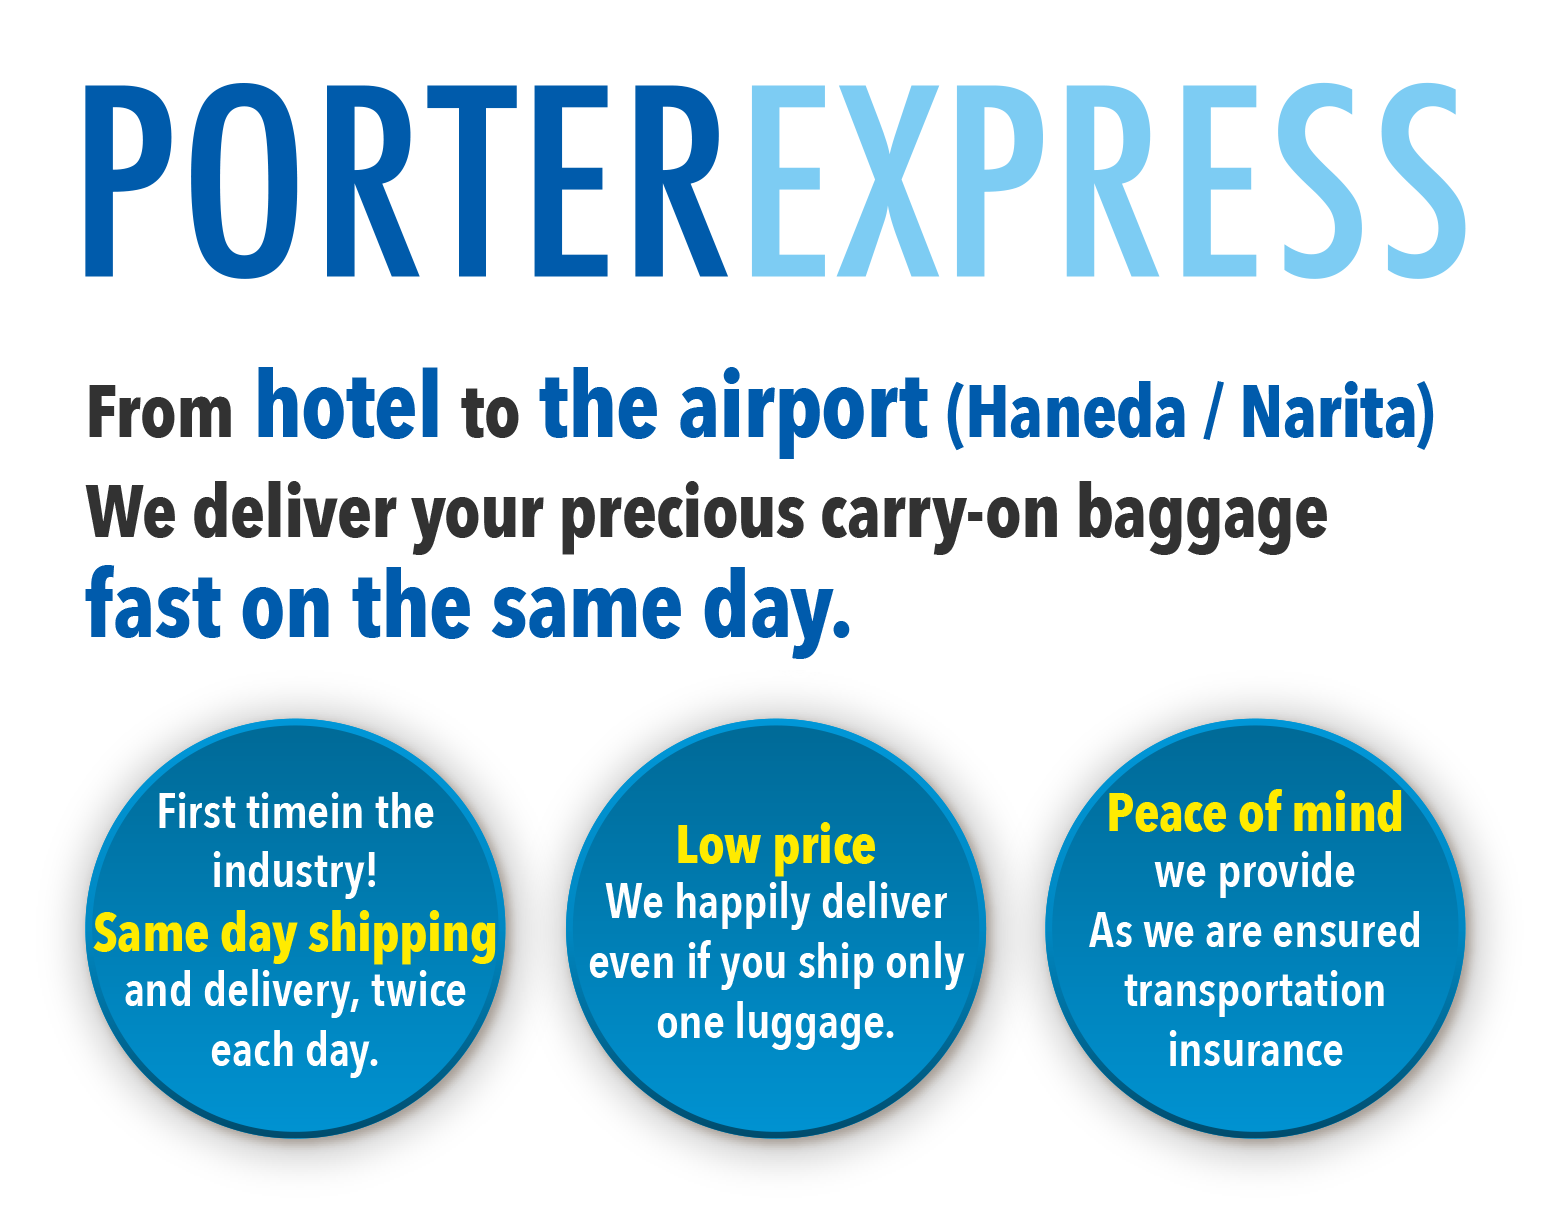 PORTER EXPRESS LUGGAGE TRANSFER